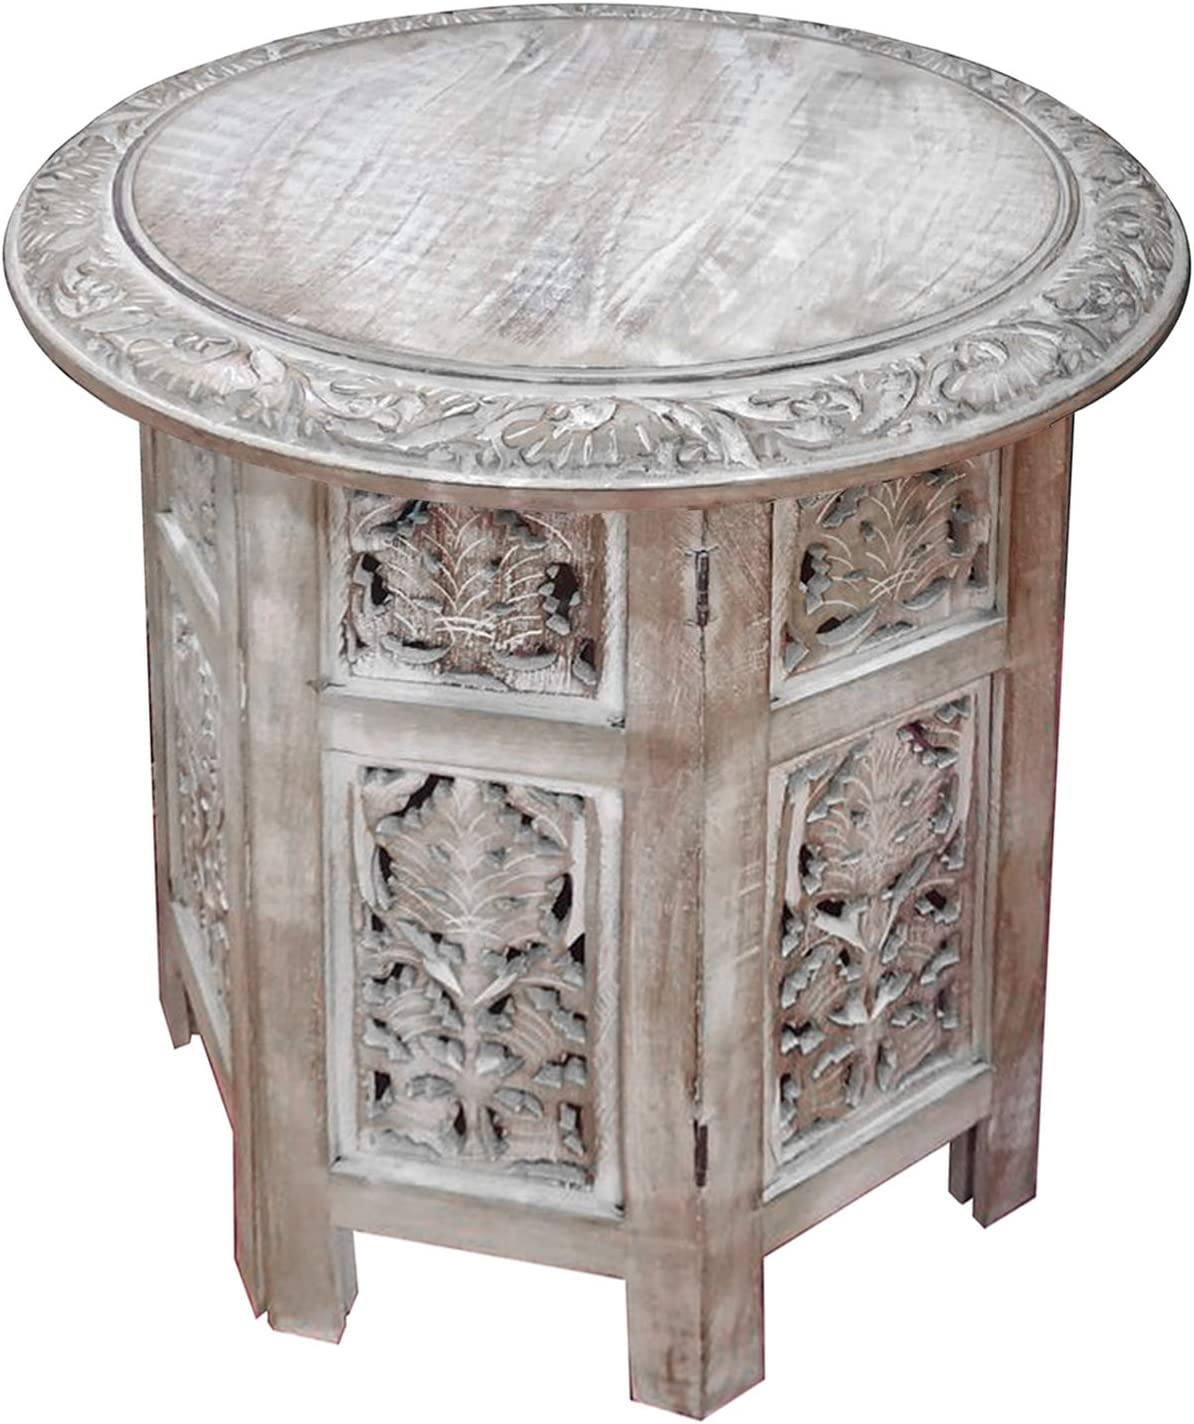 TUP The Urban Port Wooden Hand Carved Folding Accent Coffee Table, Distressed White